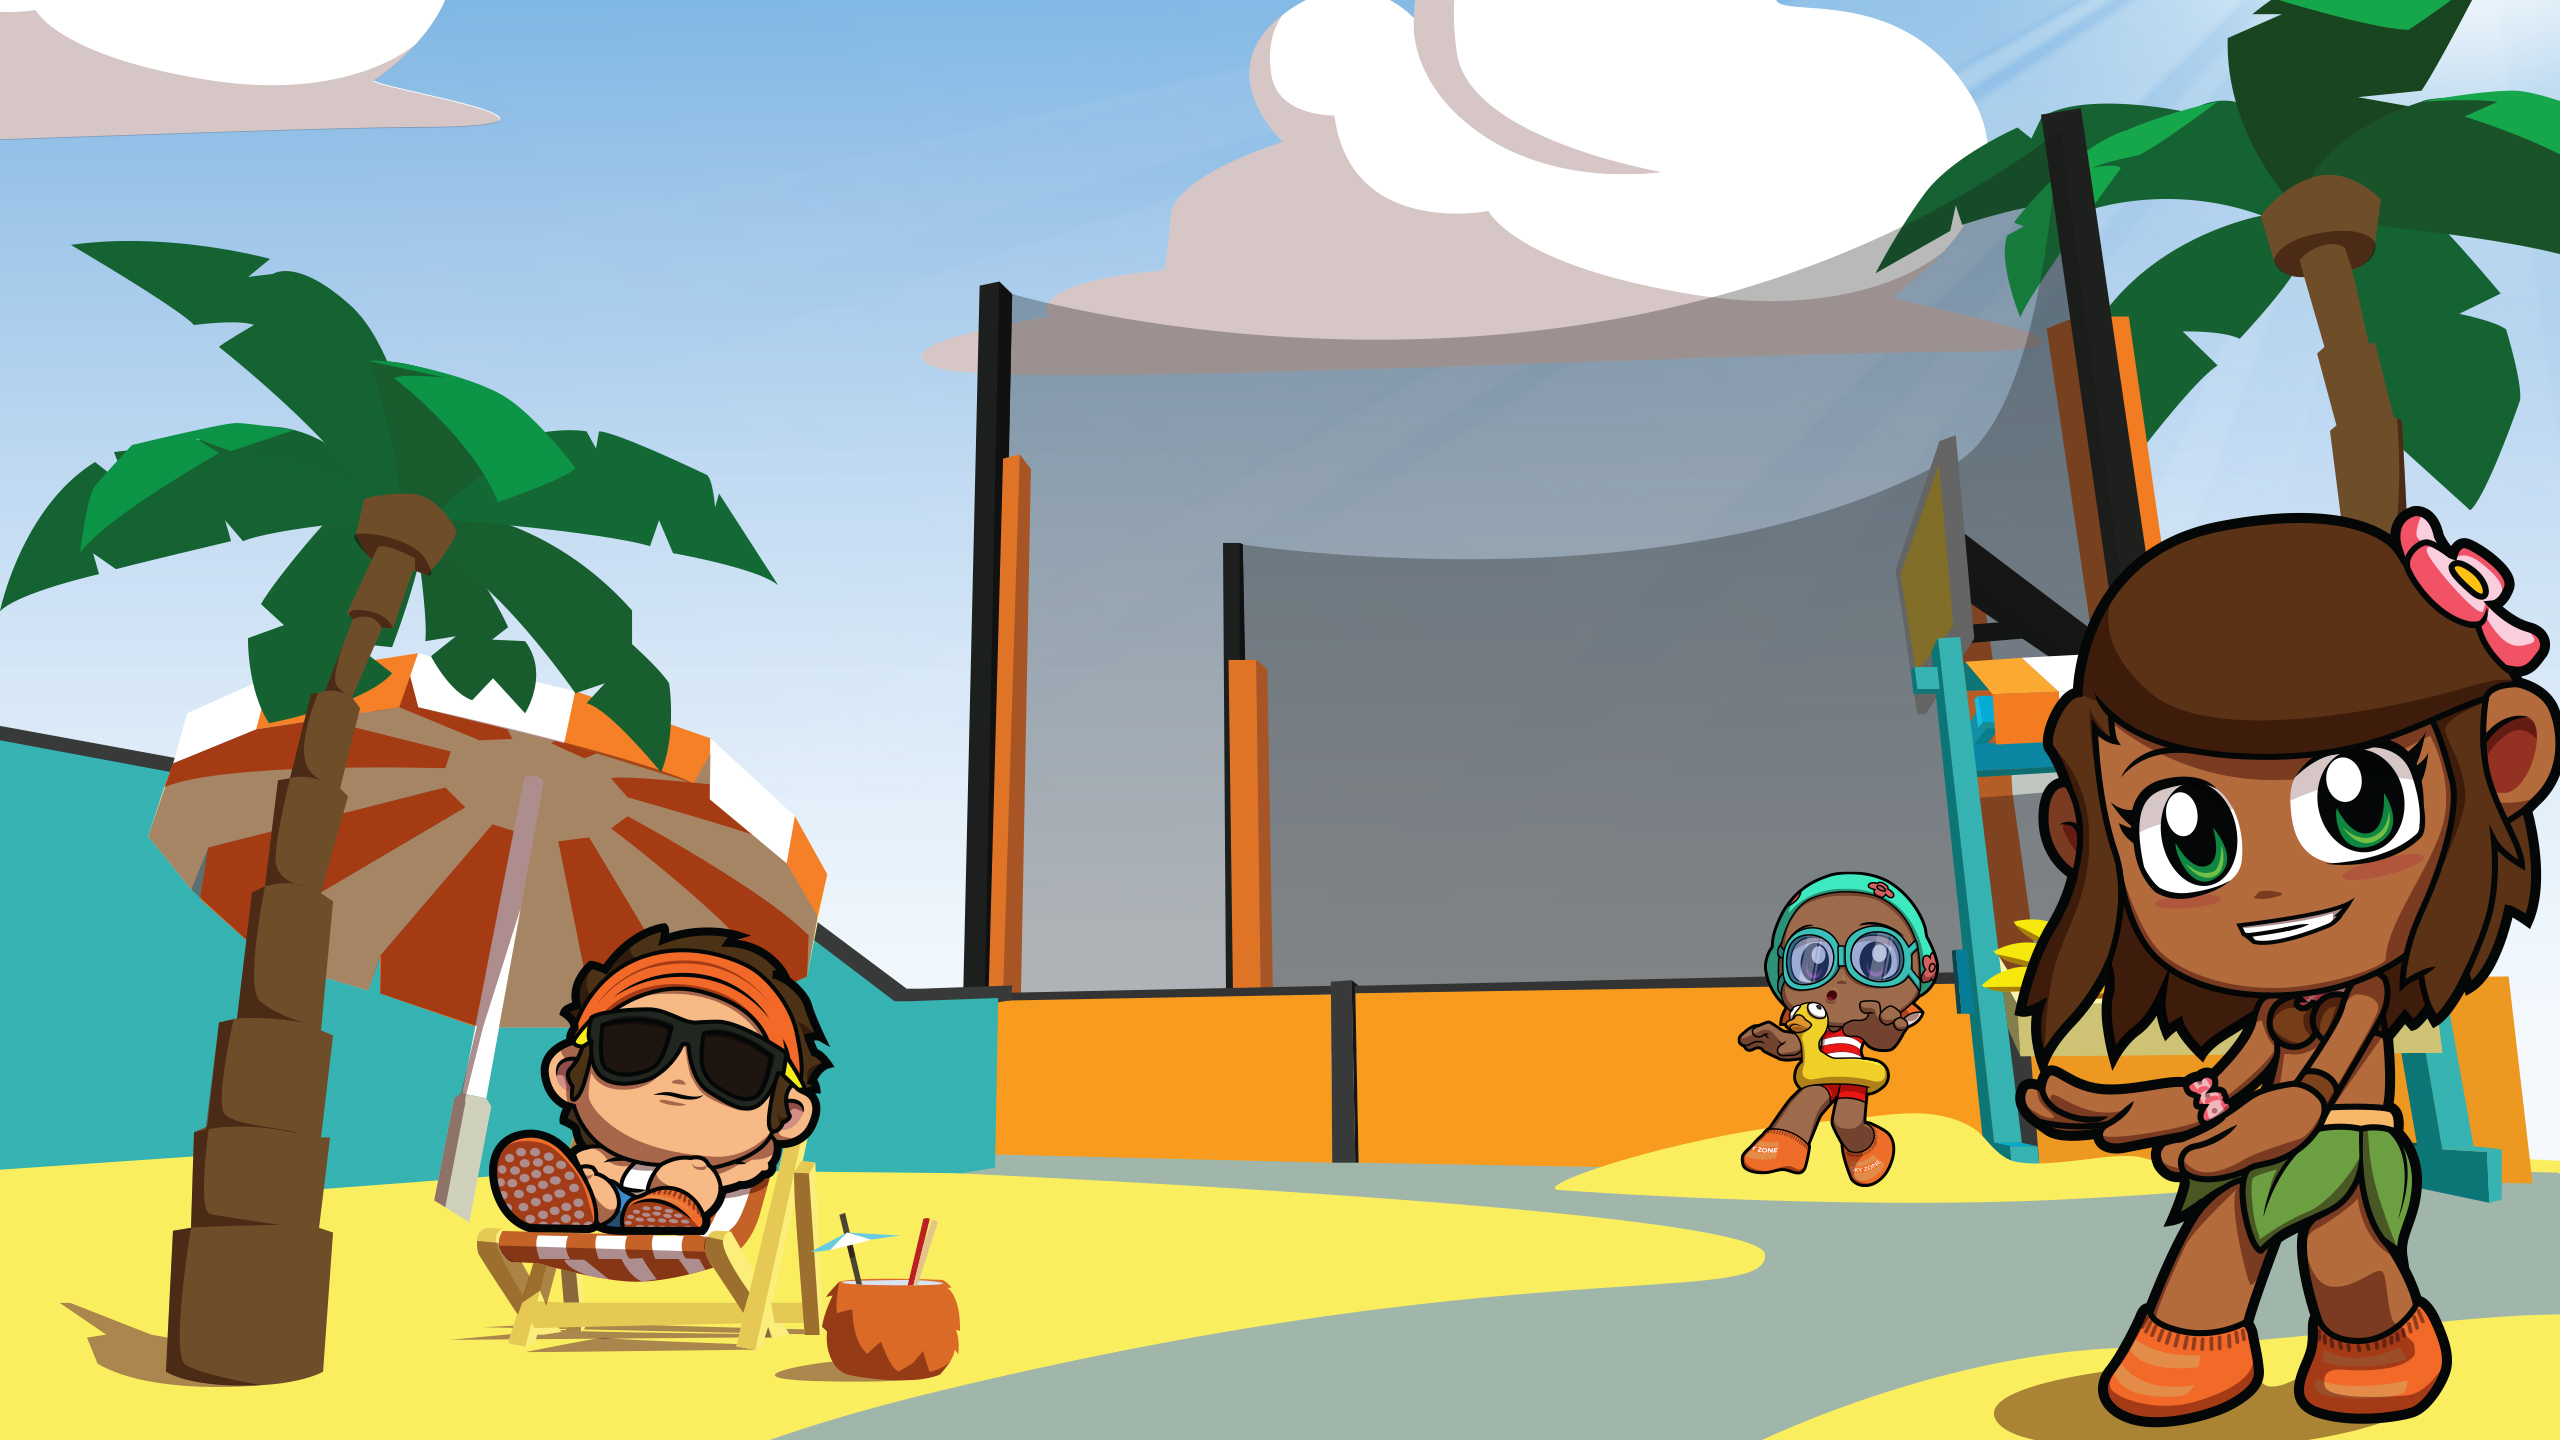 Sky Zone Game characters in summer theme